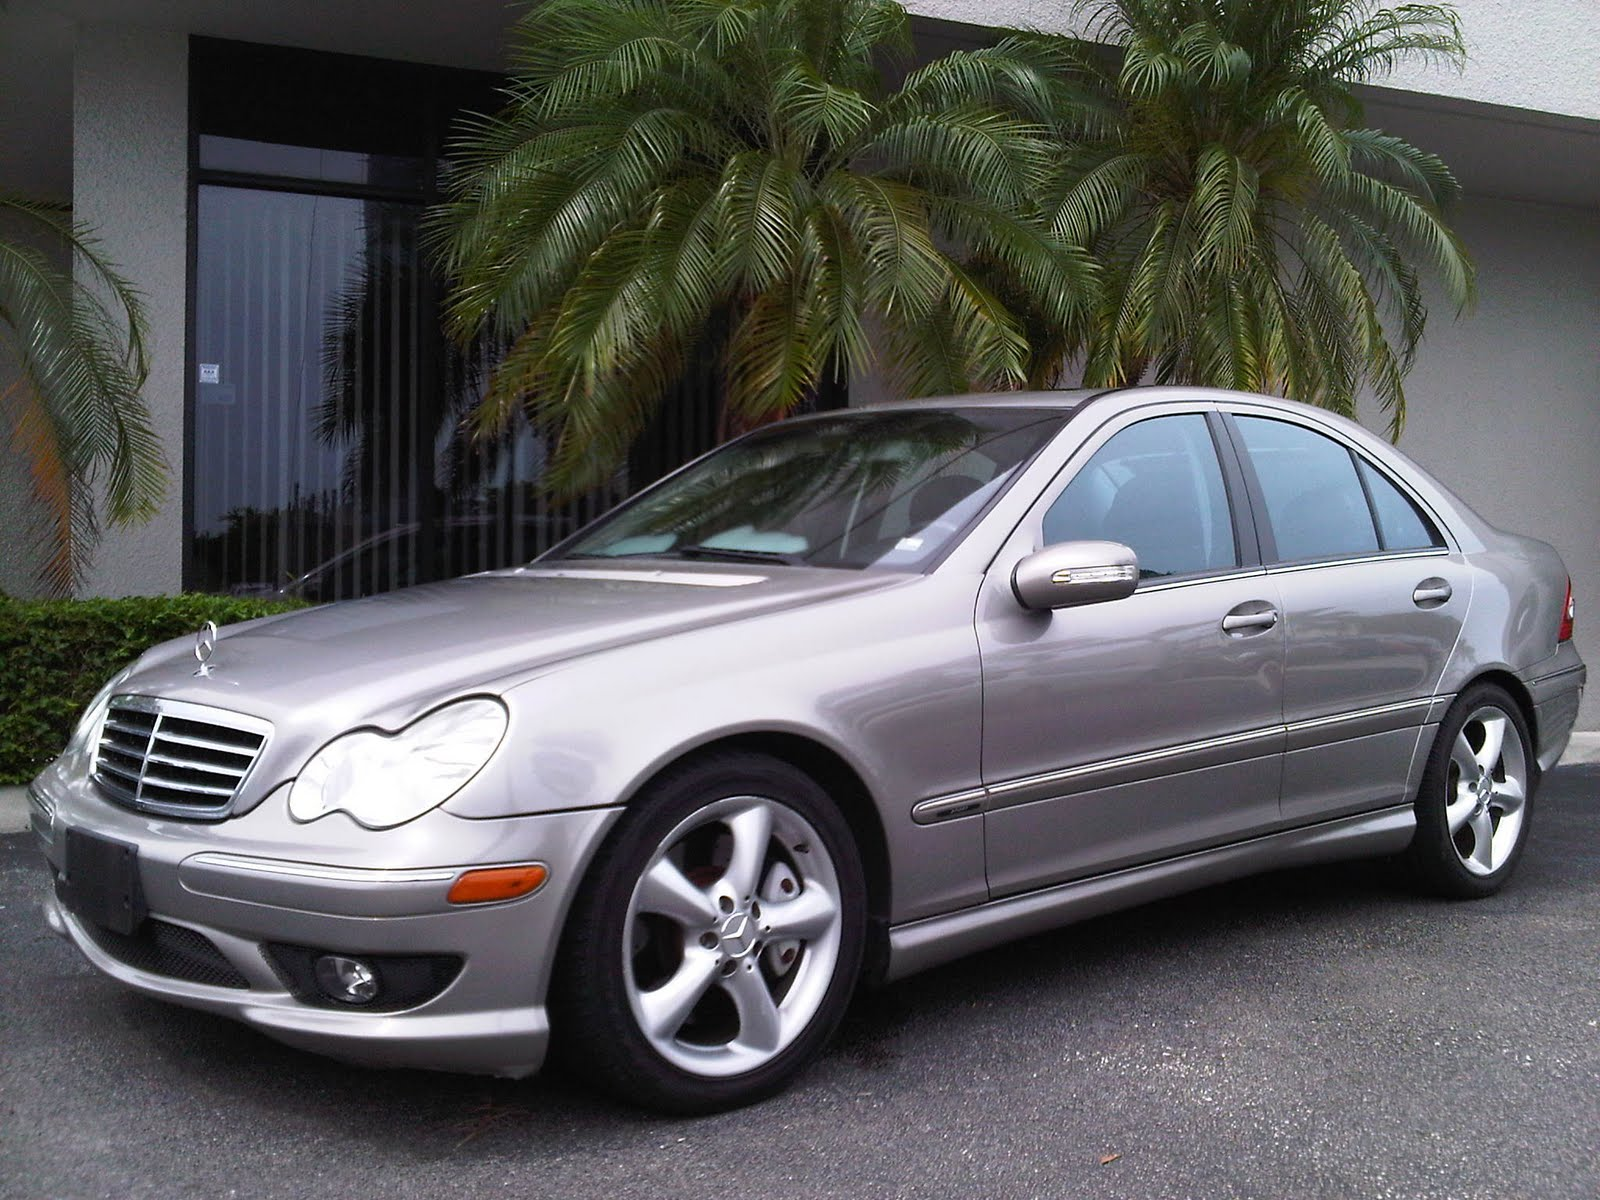 Awesome motors inventory 2006 mercedes benz c230 sport for 2006 mercedes benz c230 problems